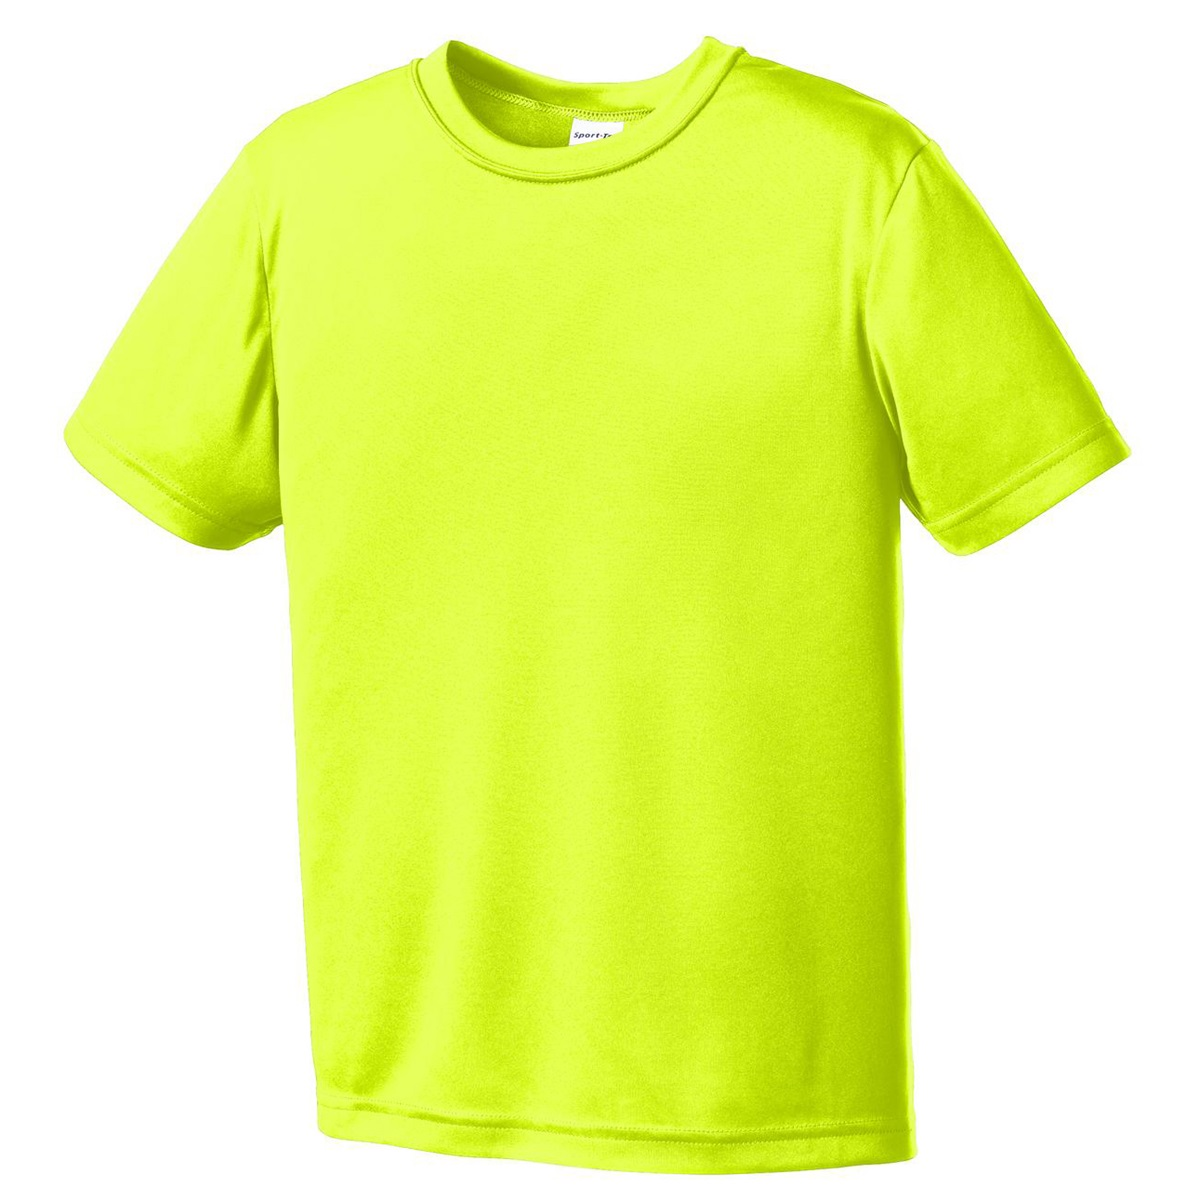 Sport-Tek YST350 Youth Competitor Tee - Neon Yellow ...